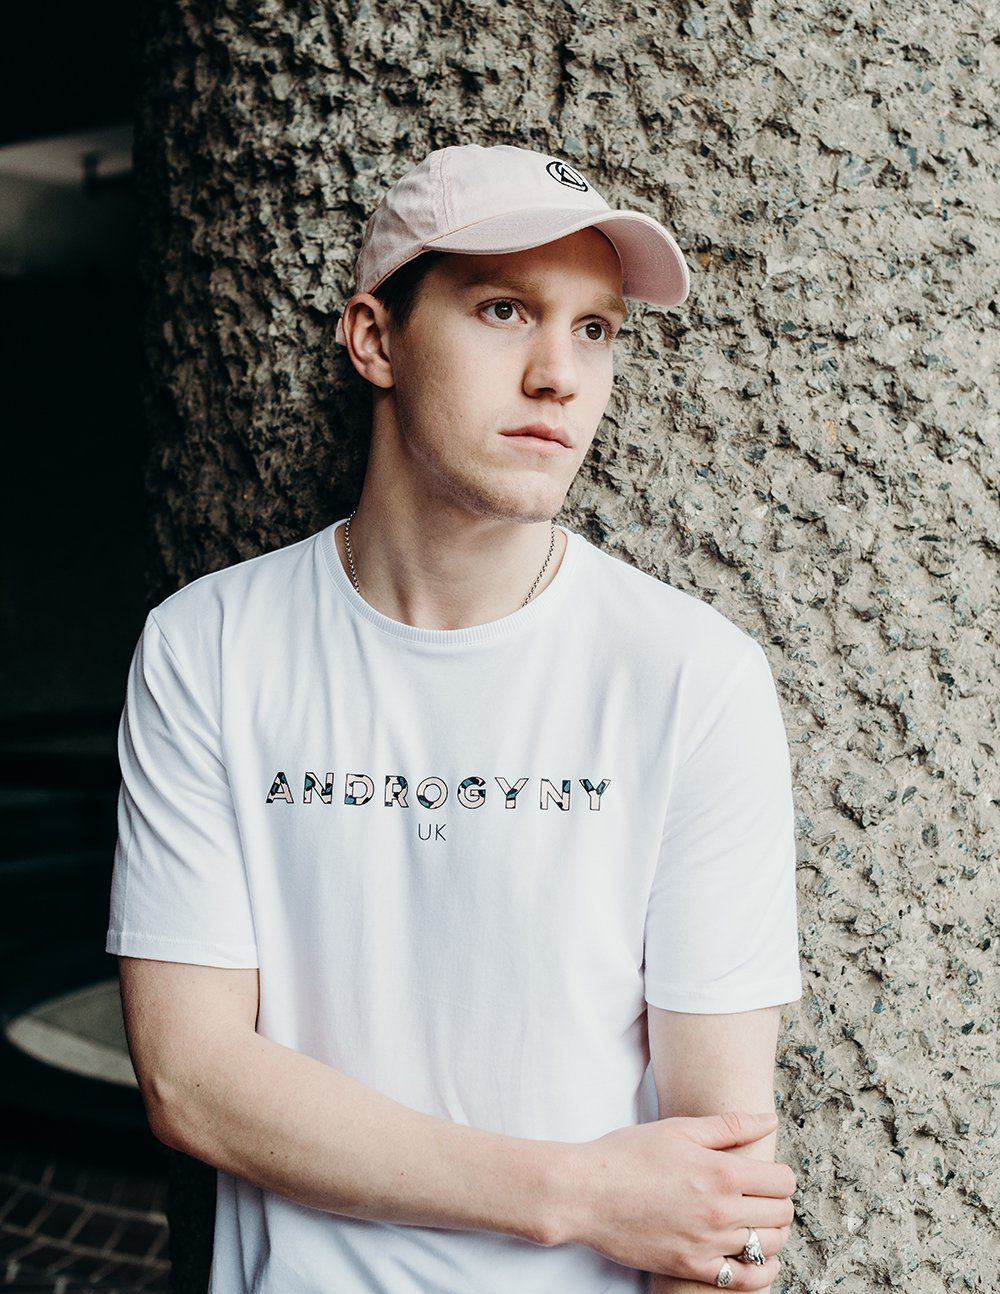 unisex white branded t-shirt handmade using organic cotton by ethical gender neutral streetwear brand Androgyny UK